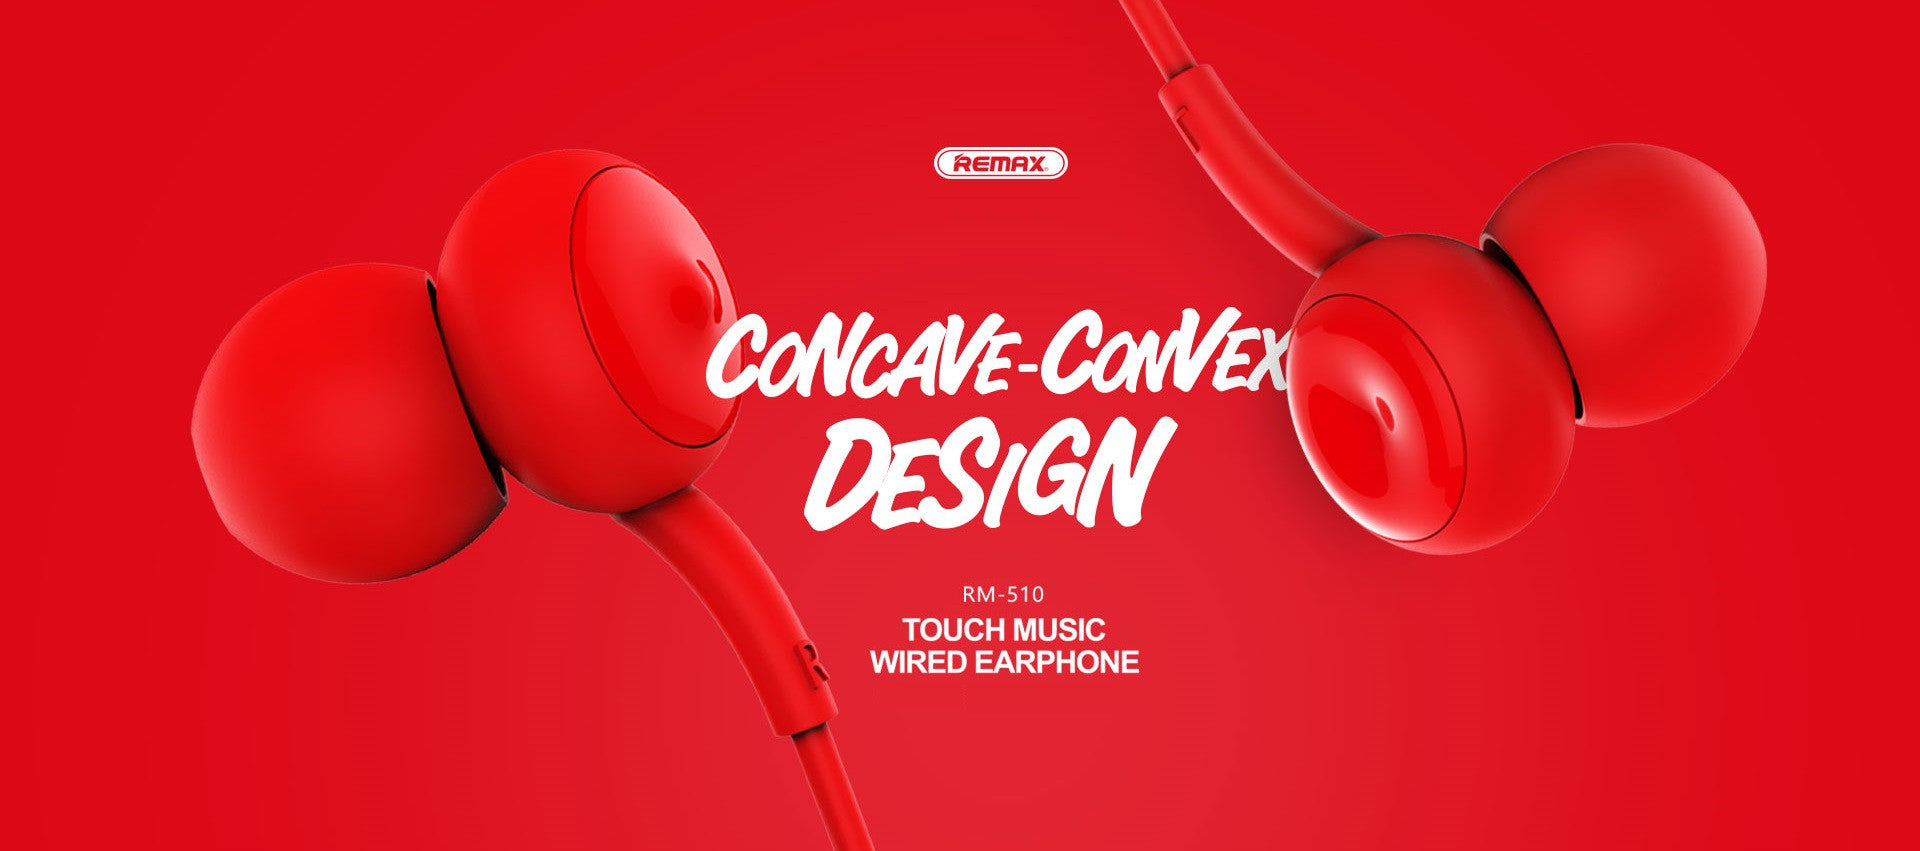 https://www.iremax.com/products/touch-music-wired-earphone-rm-510